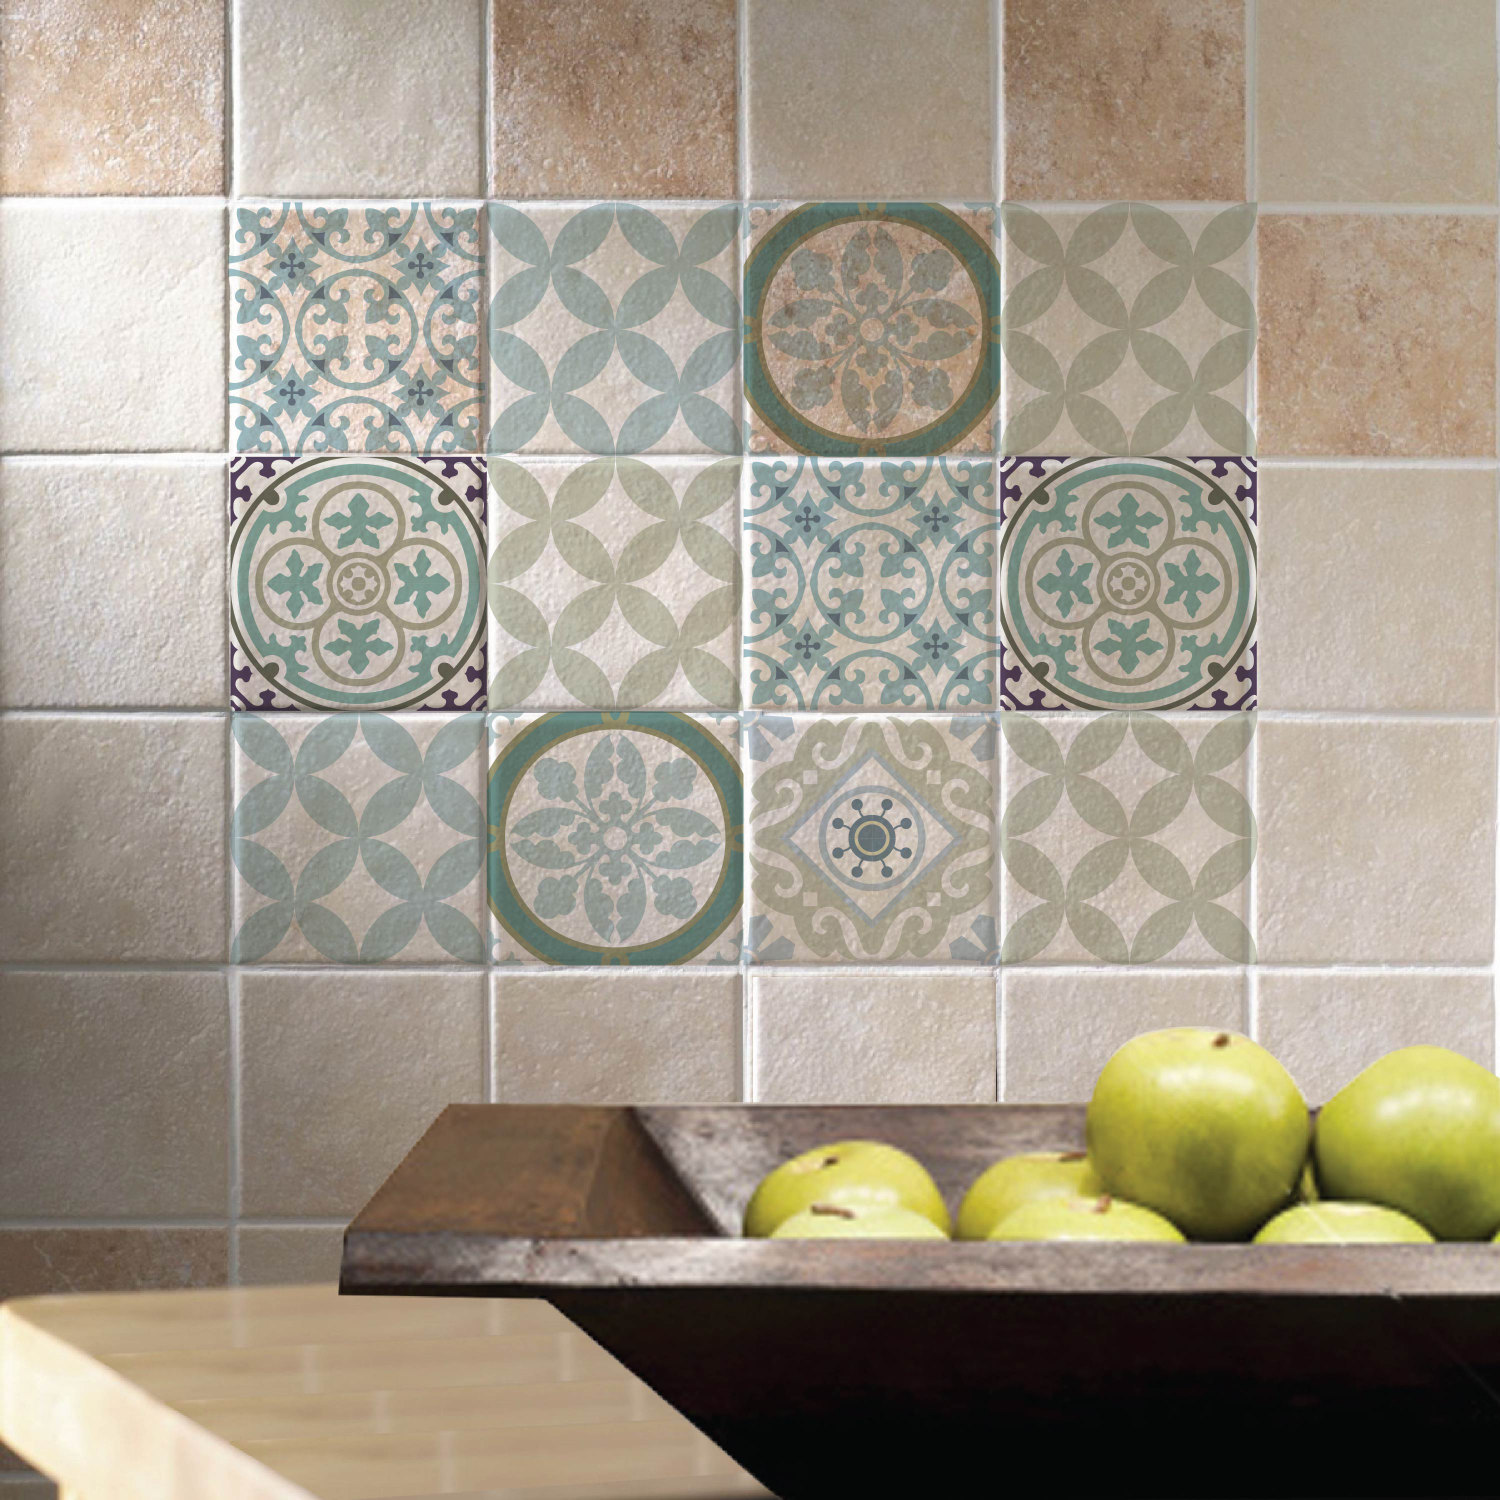 Attirant Mix Tile Decals Kitchenbathroom Tiles Vinyl Floor Tiles